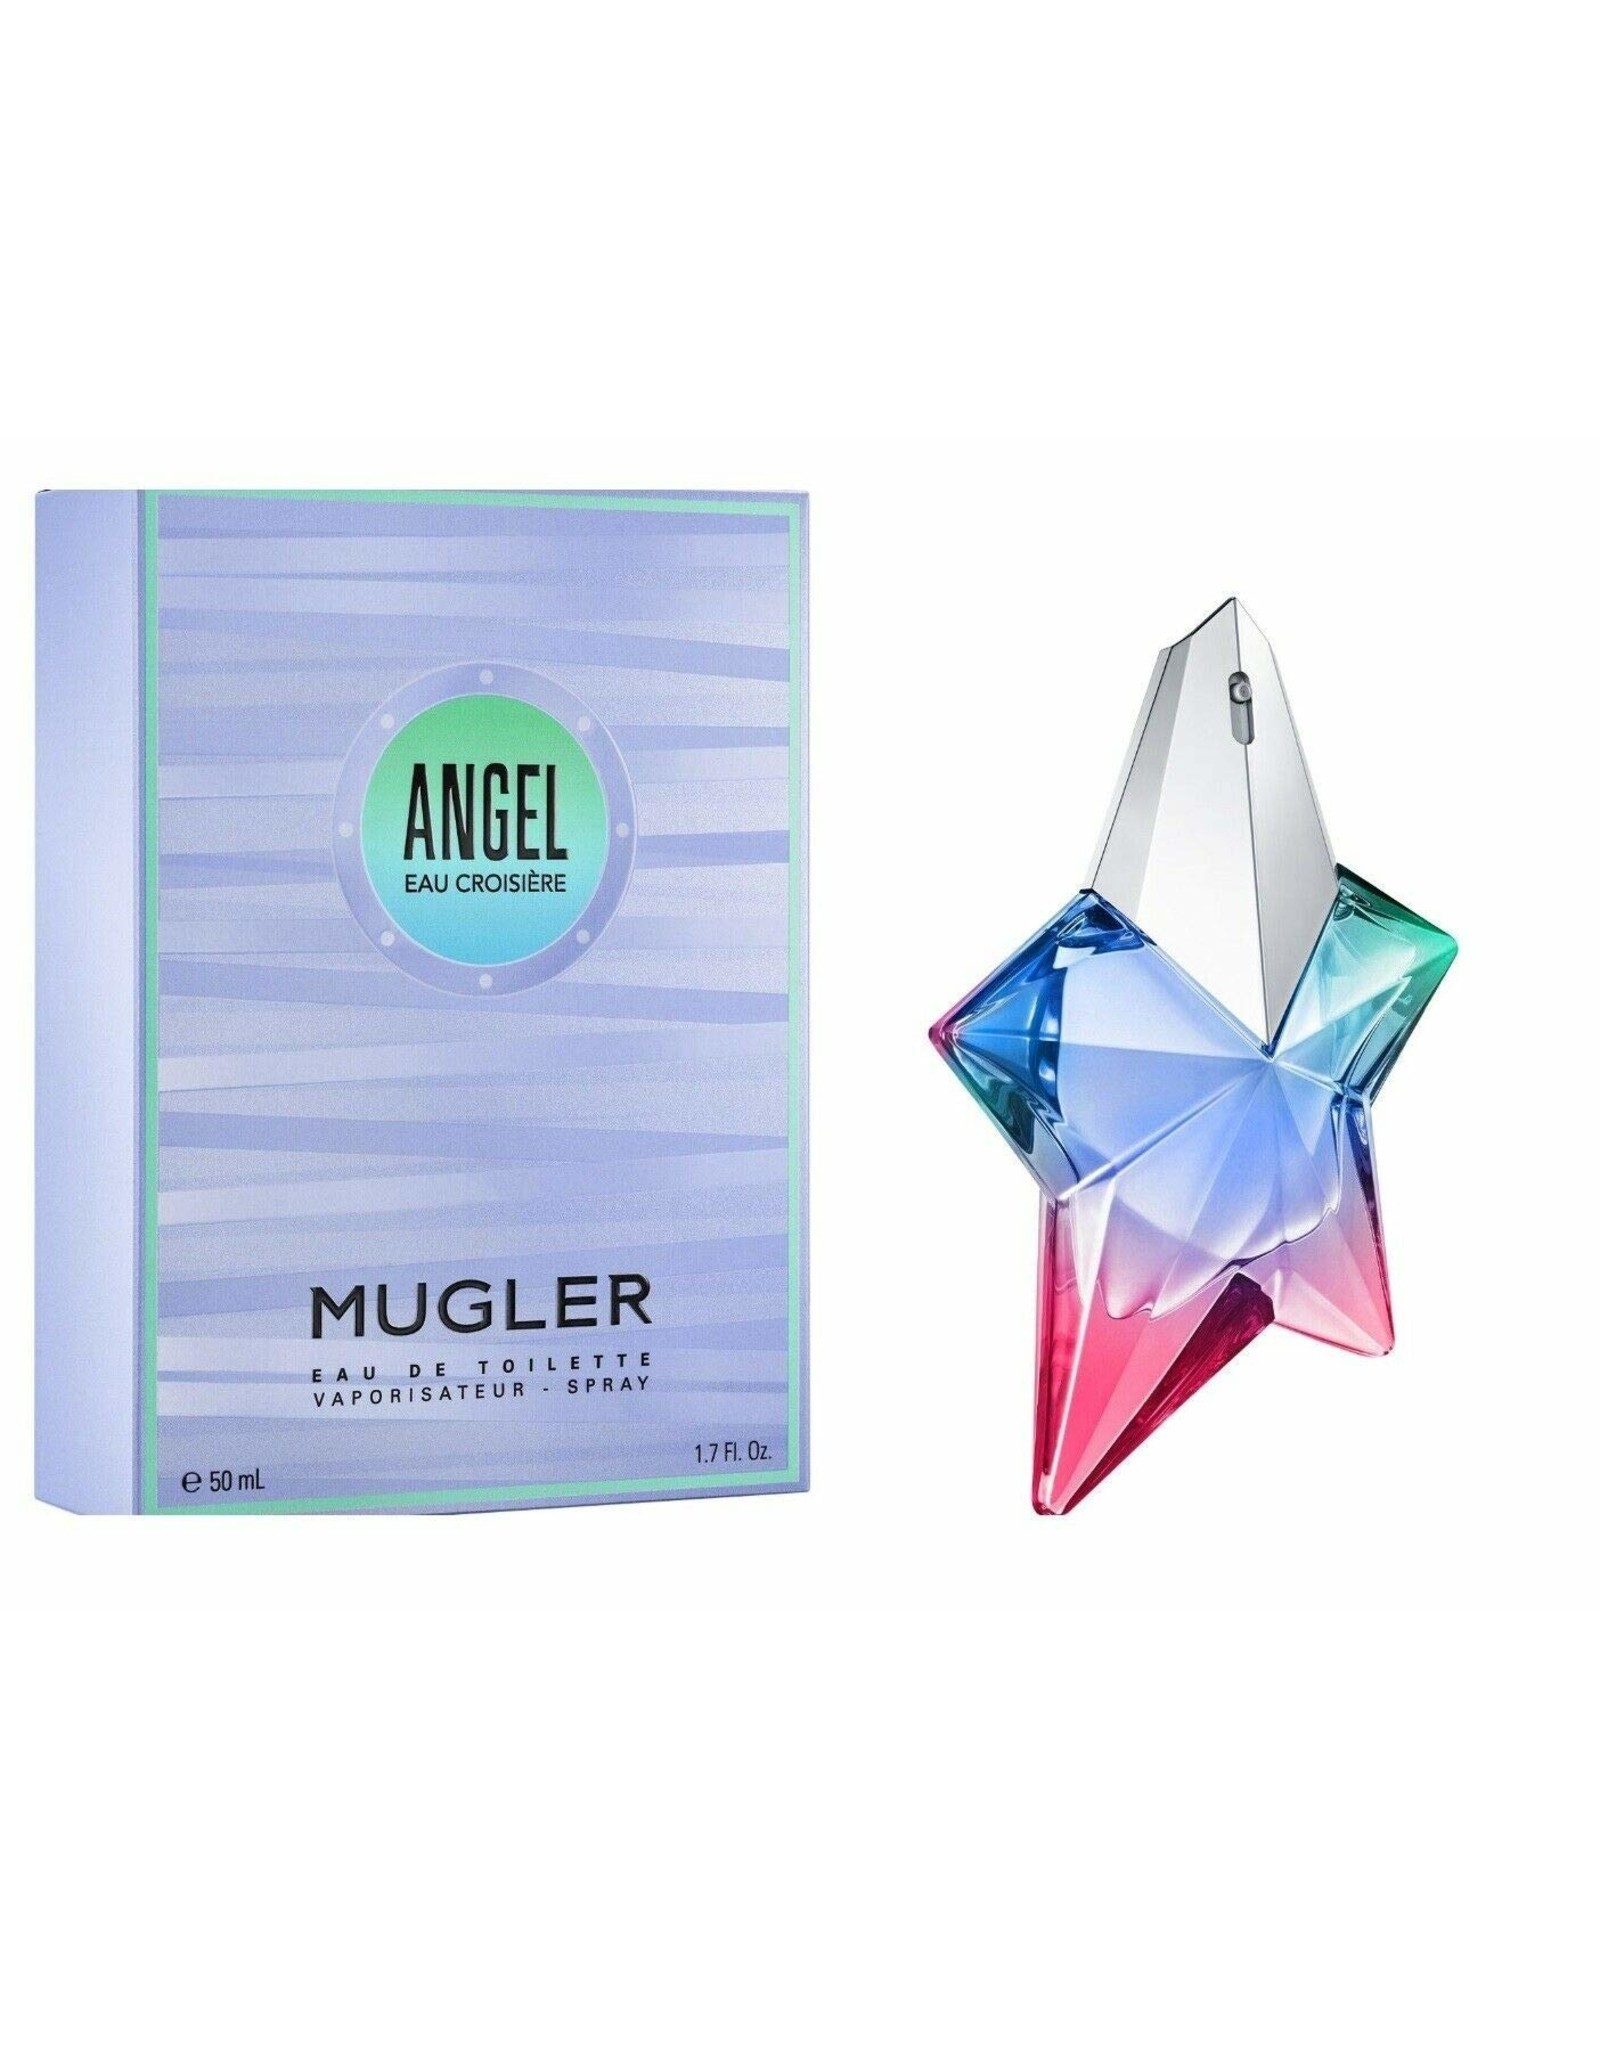 THIERRY MUGLER THIERRY MUGLER ANGEL EAU CROISIERE